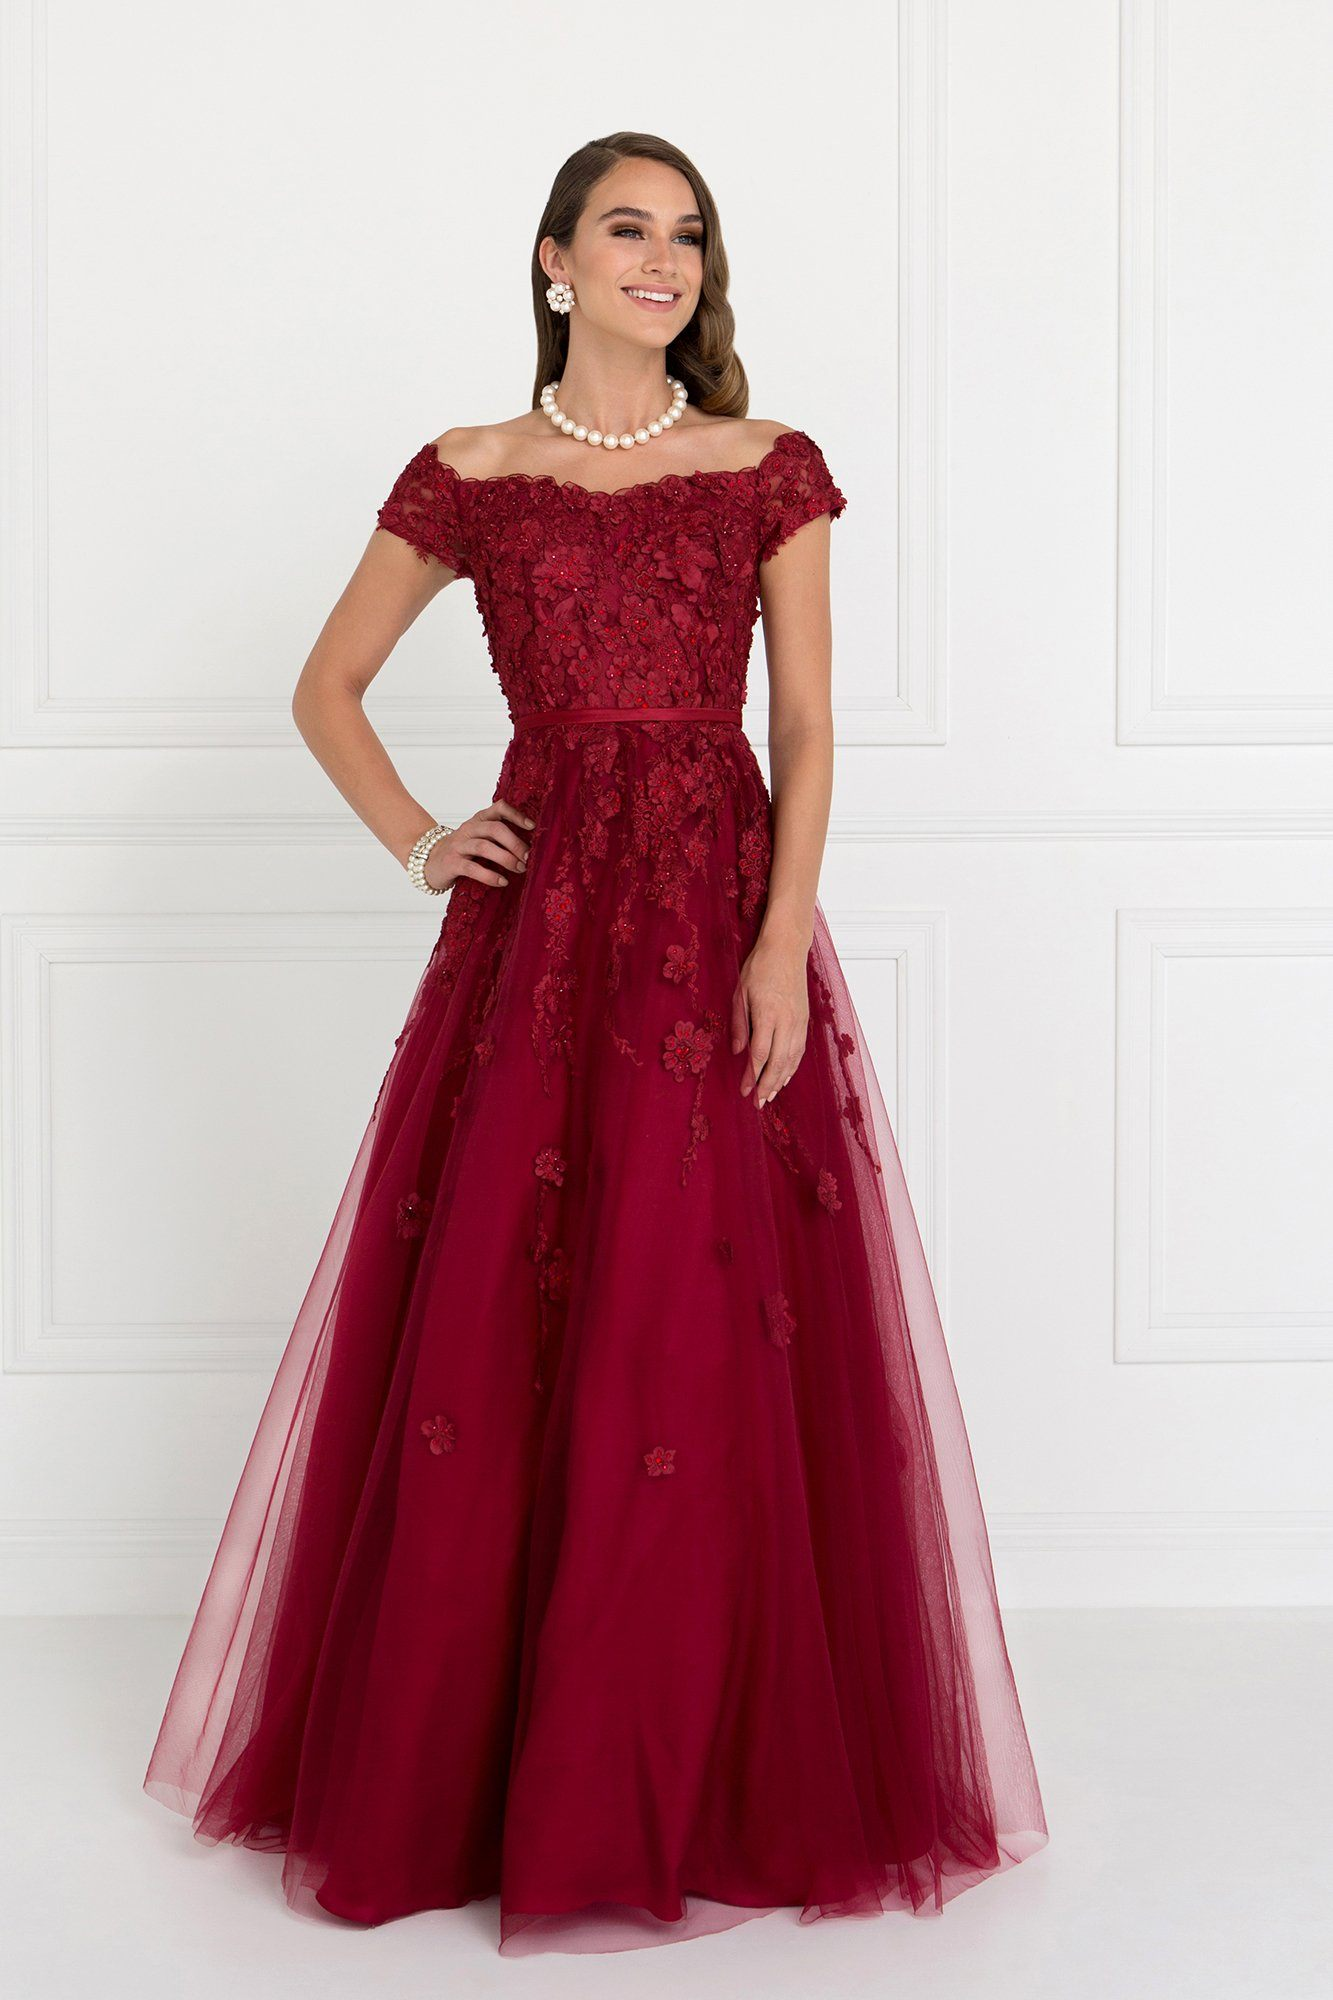 Off the shoulder burgundy ball gown dress gls 1516 – Simply Fab Dress